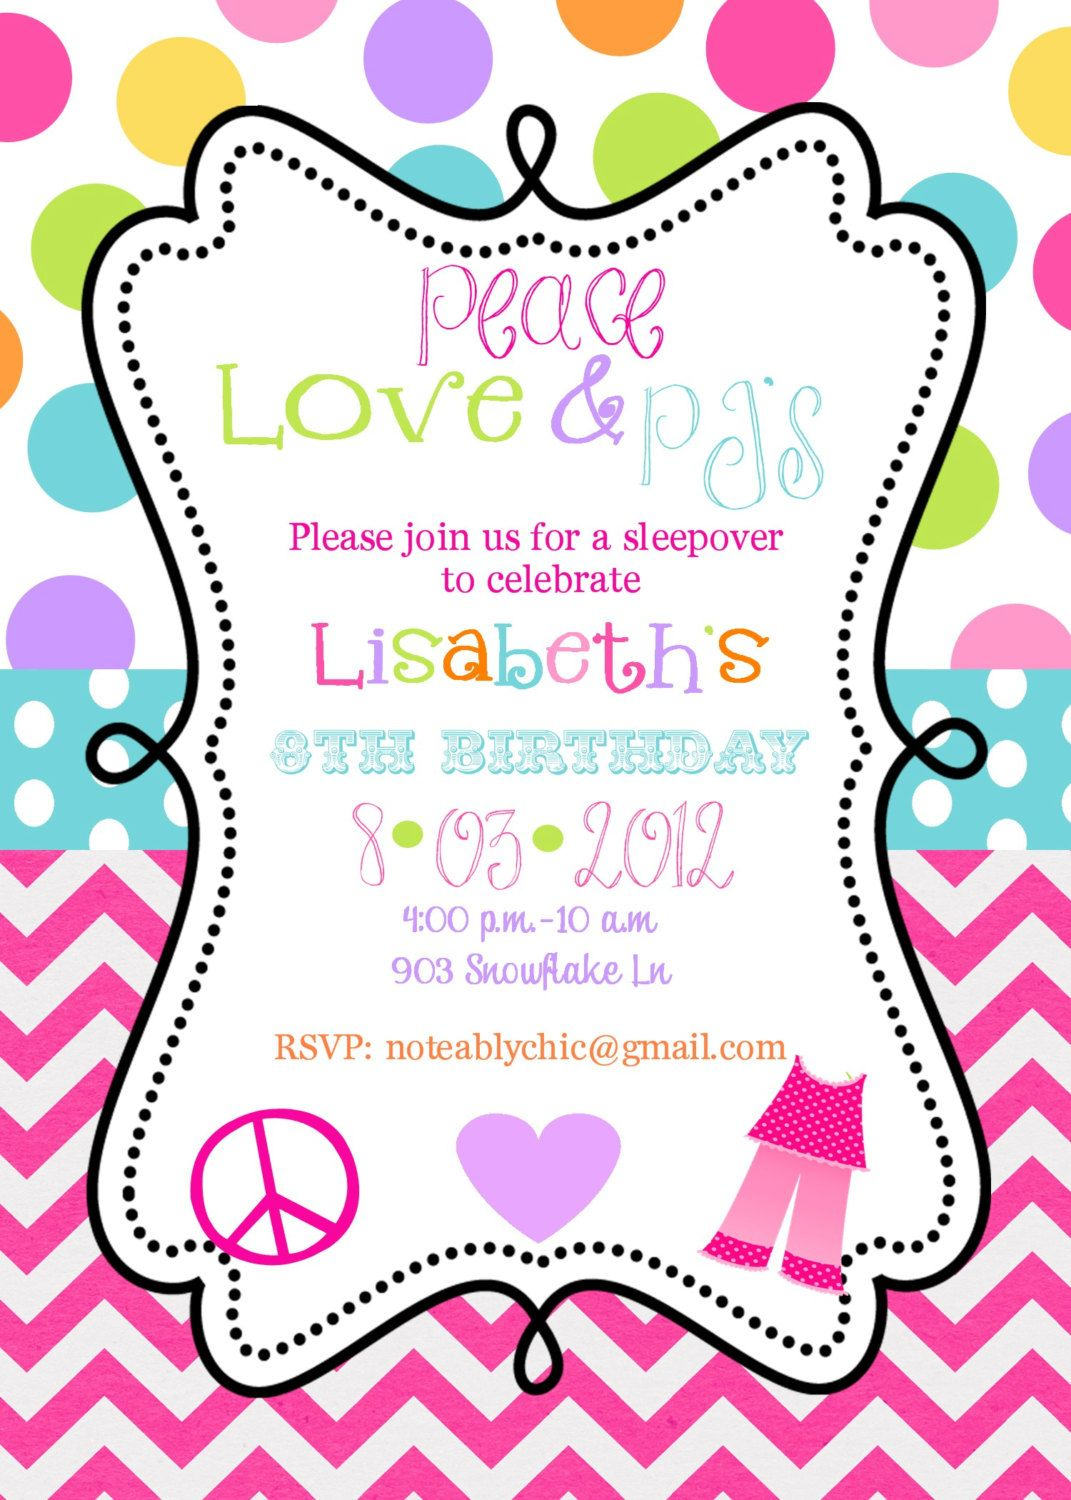 Free Birthday Invitations Templates My Birthday – Template for Birthday Invitations